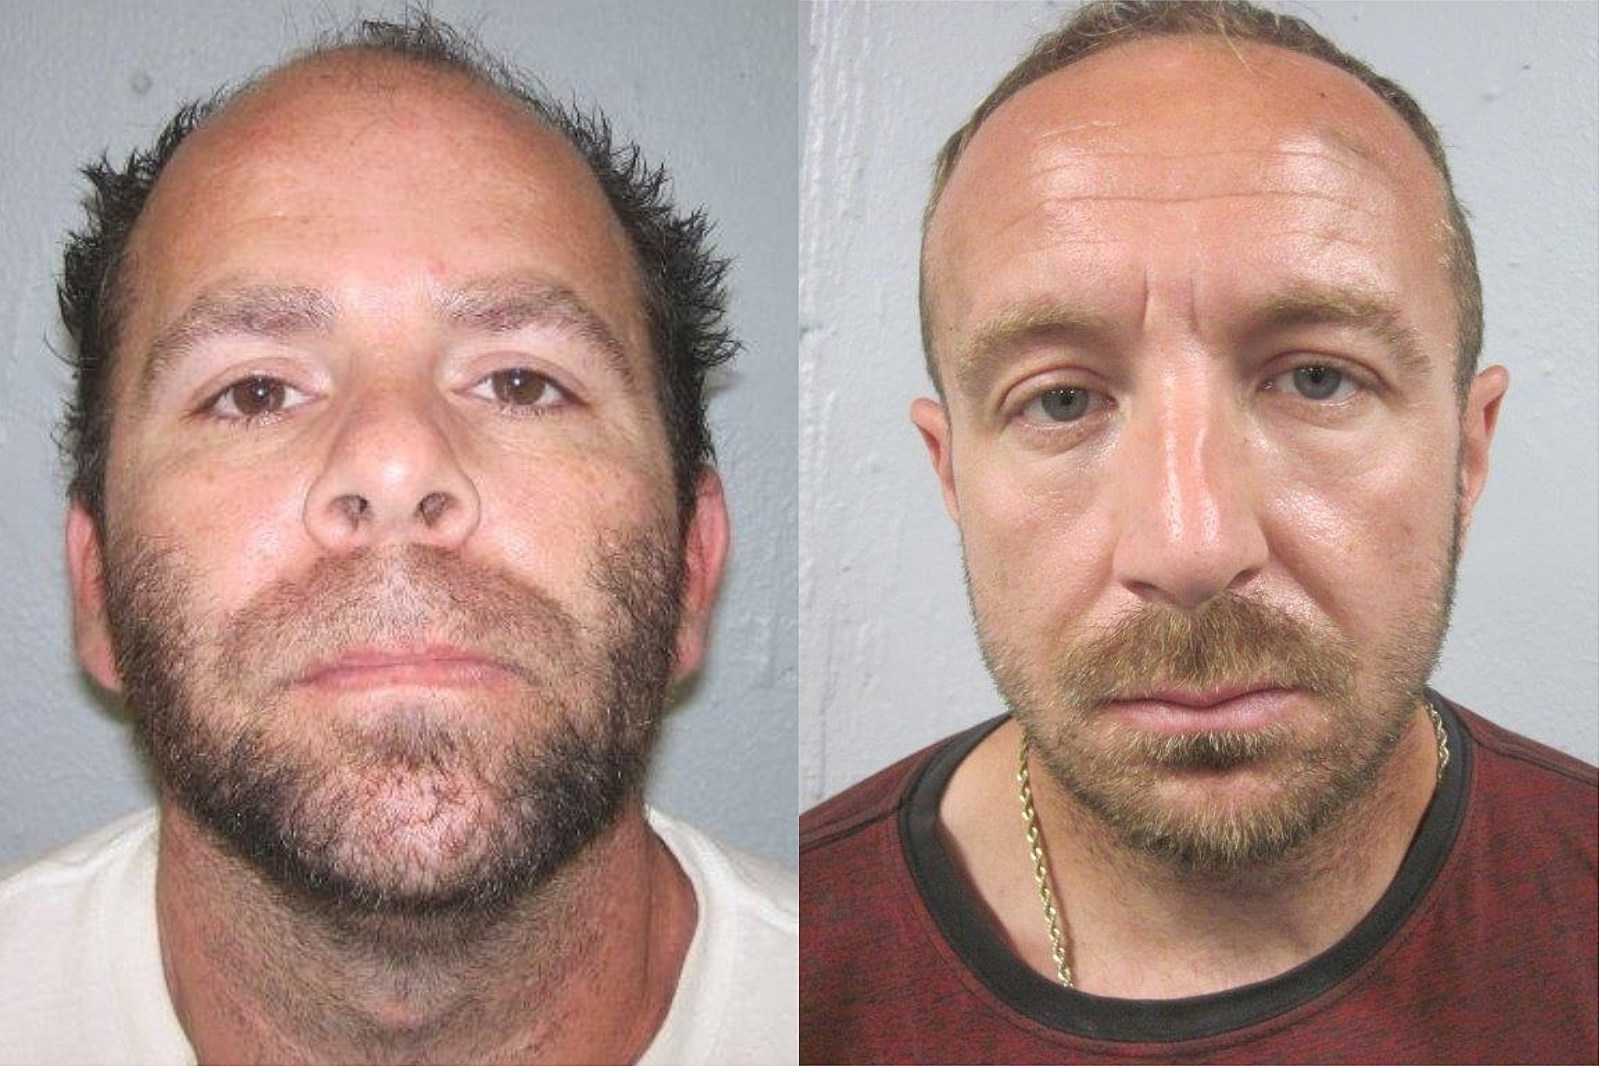 Hannibal Police Arrest Two on Meth Charges